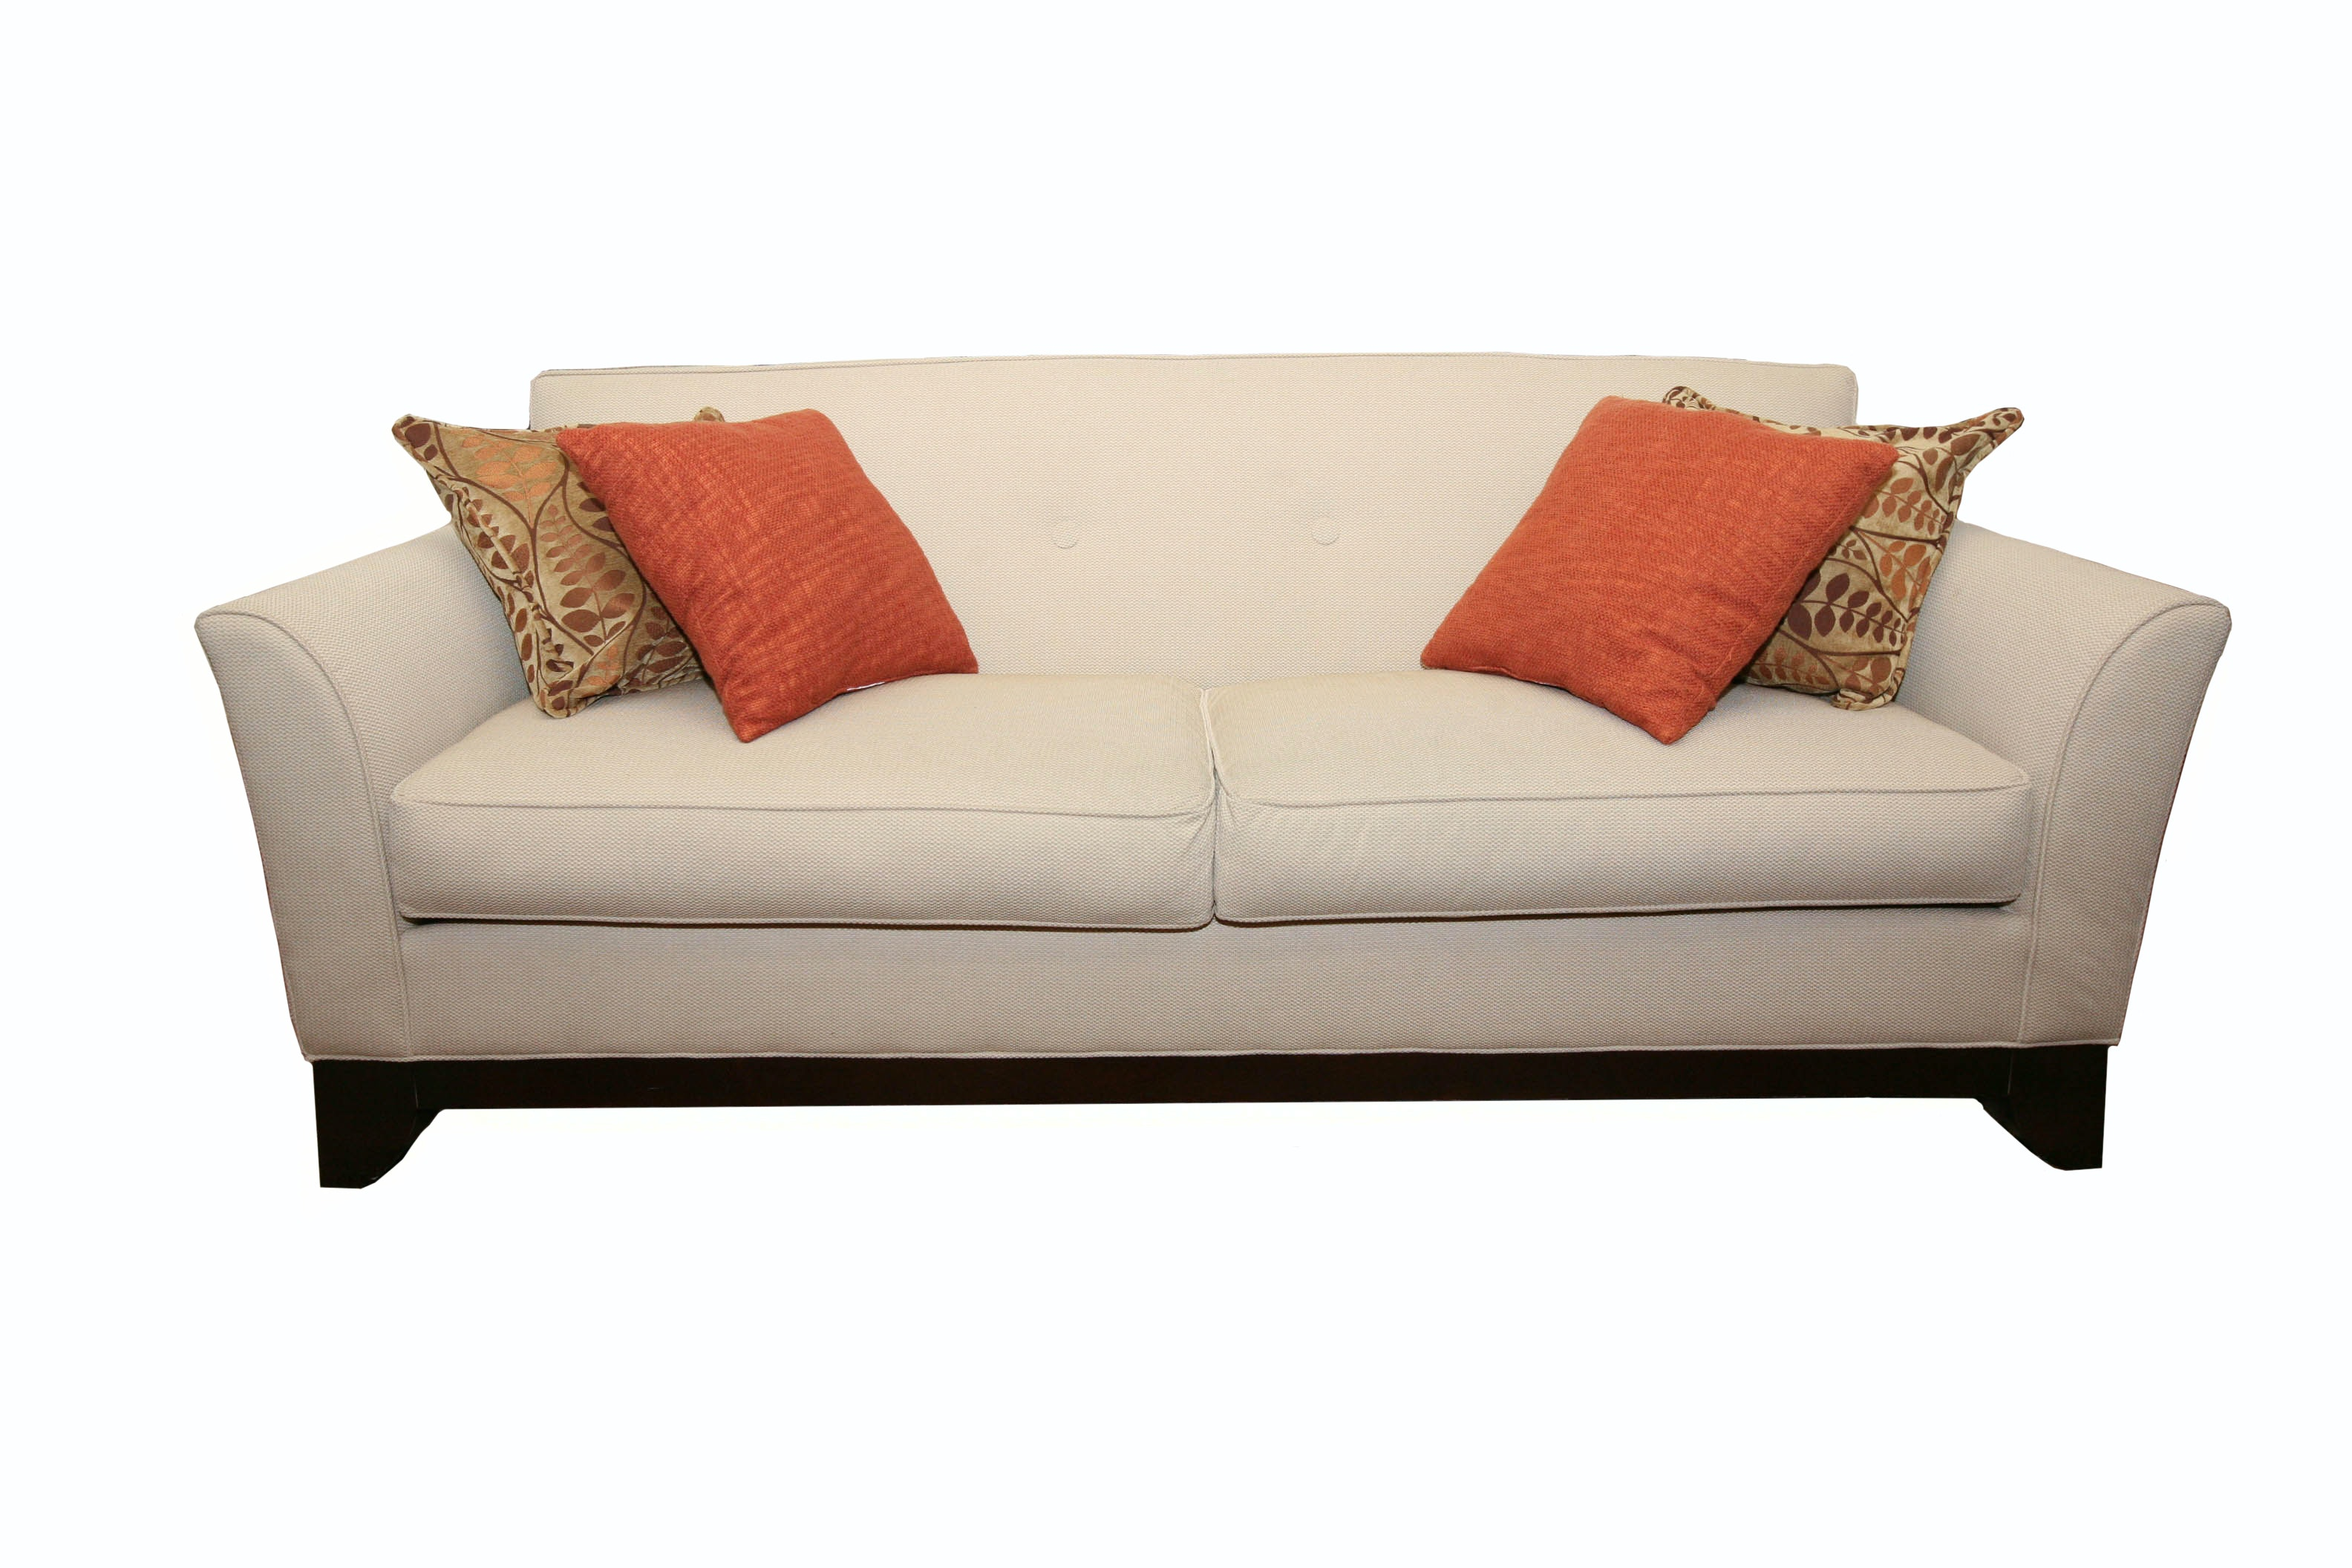 Charming Fabric Sofa By Rowe Furniture With Pillows And Throw